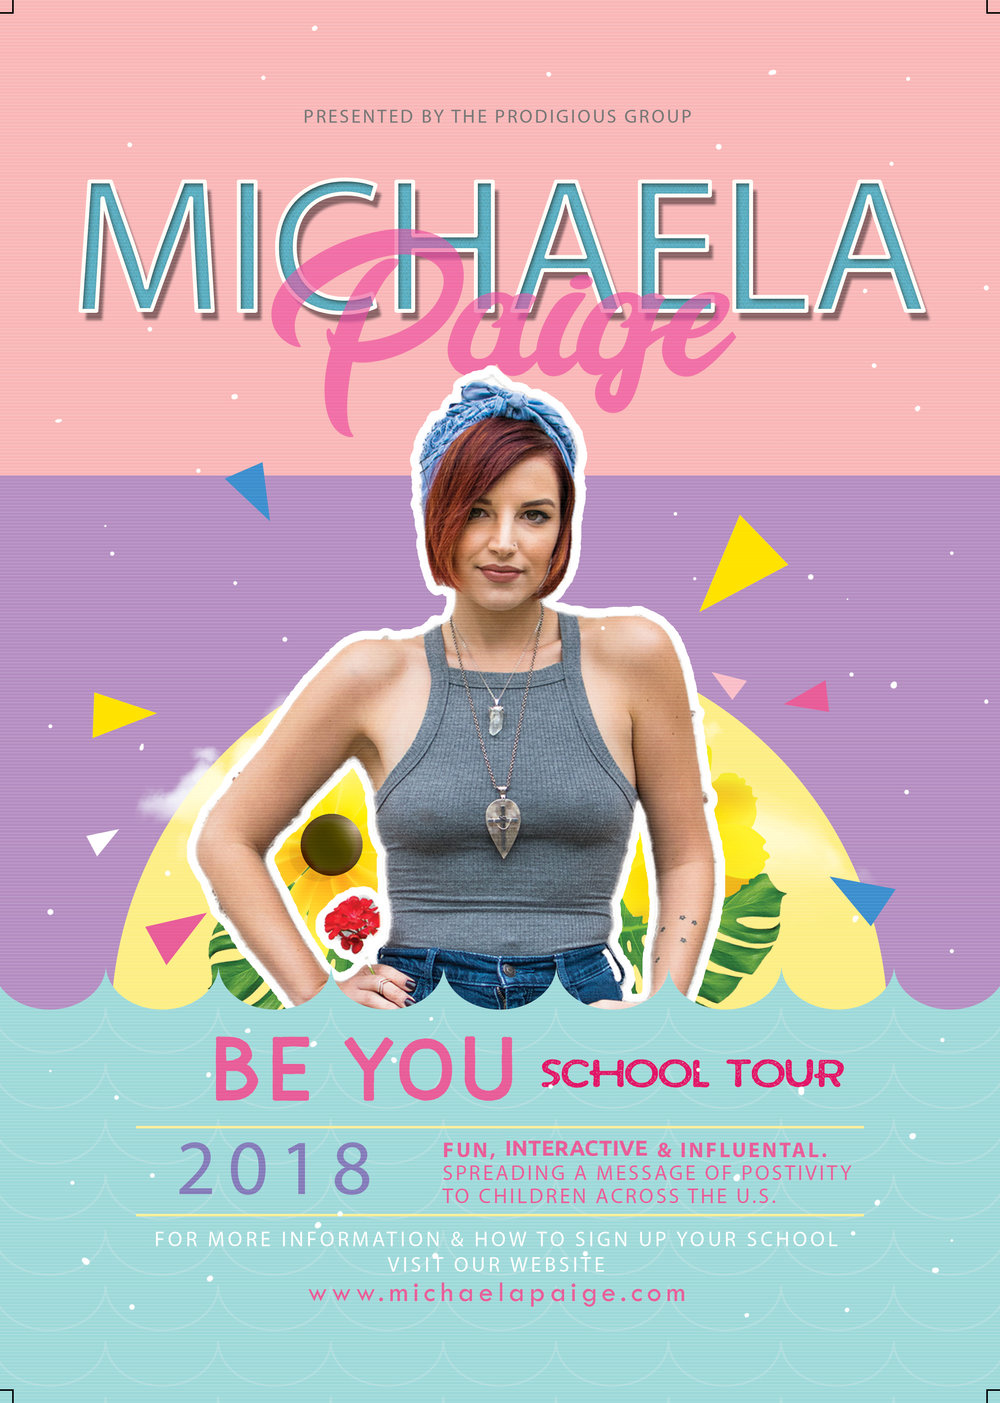 Michaela Paige PostCard copy.jpg